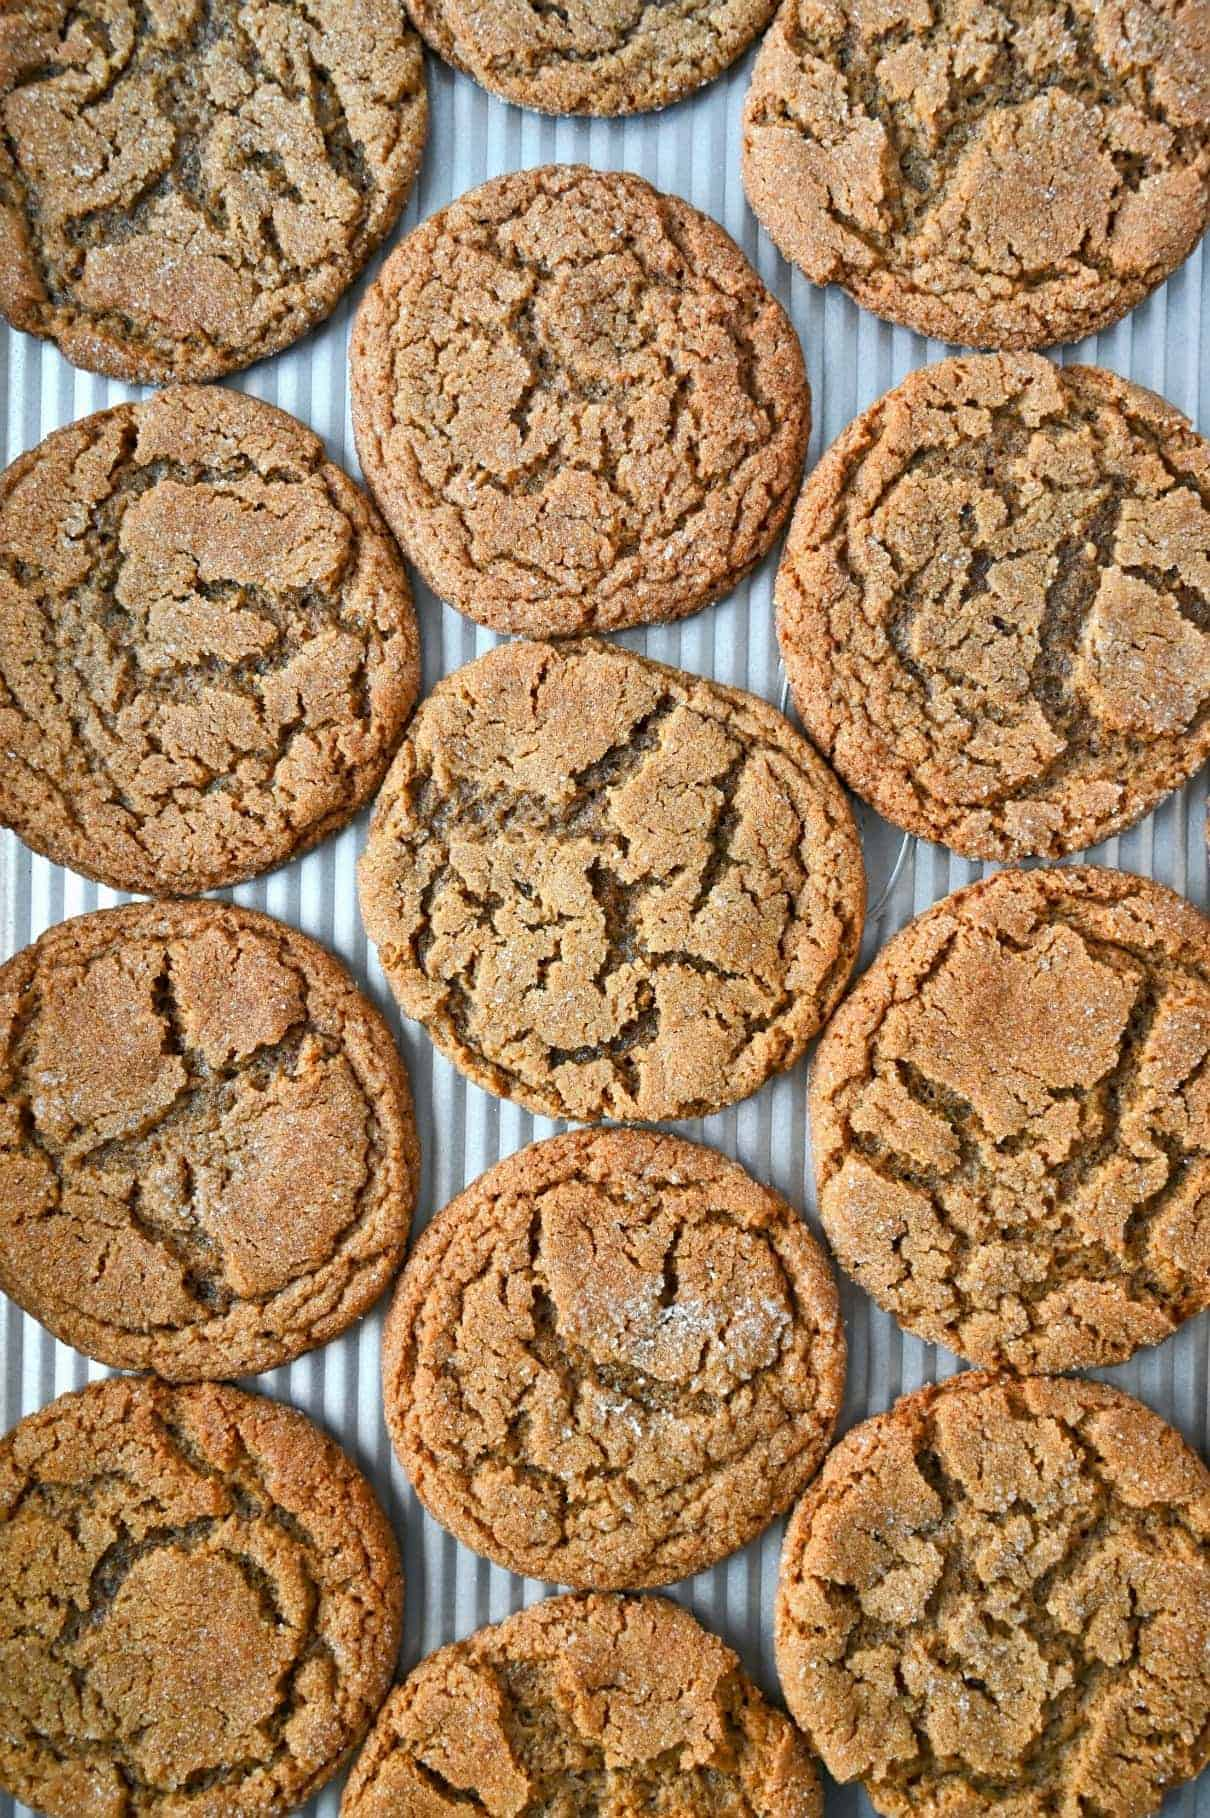 Several ginger snap cookies spread out onto a baking sheet.